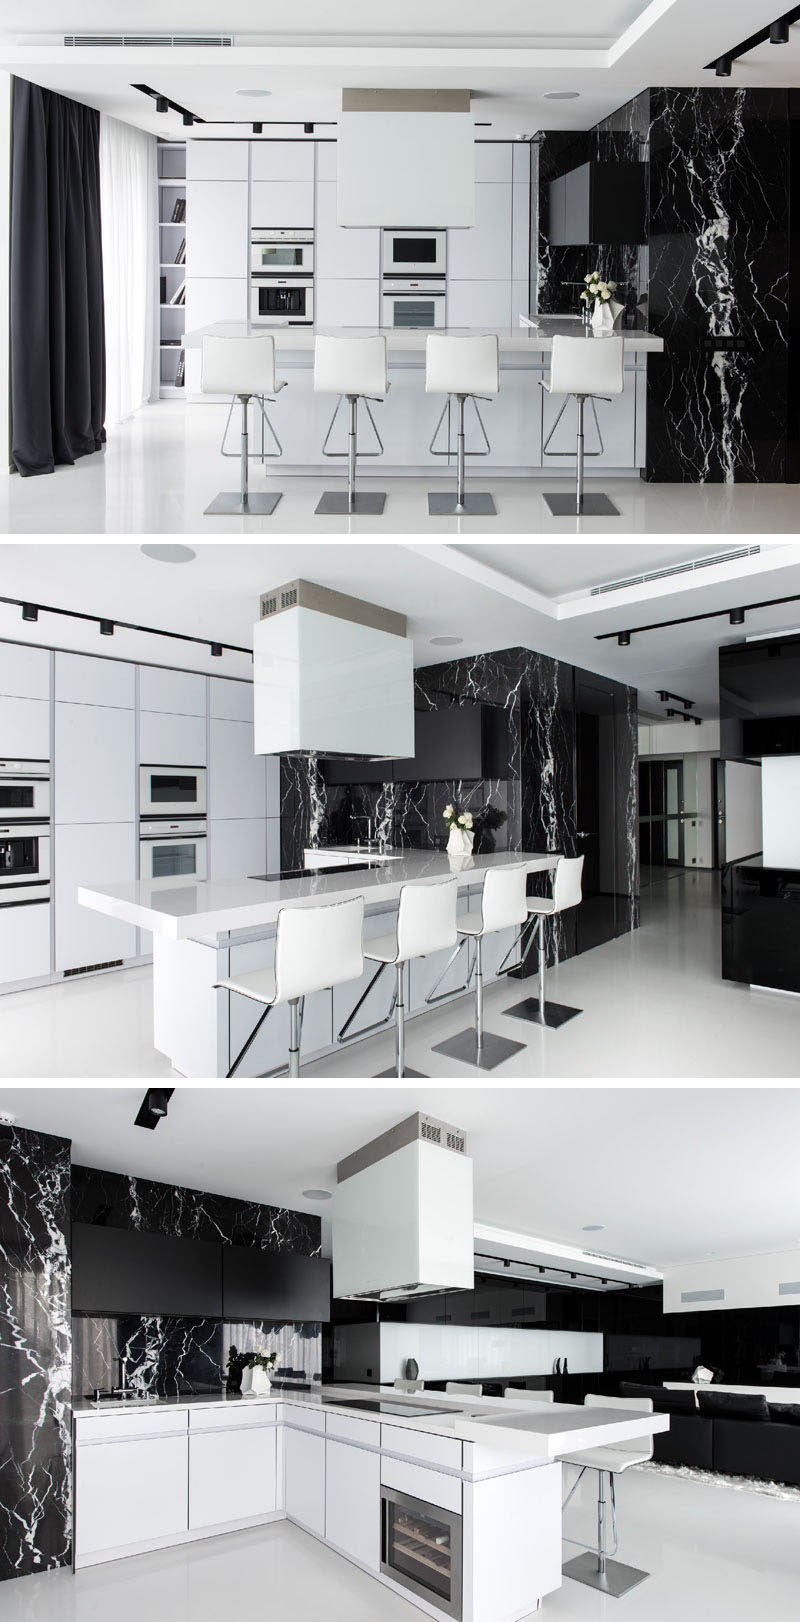 In this black and white apartment, the kitchen is mostly white, with a natural black marble and black curtains used to continue the black and white theme.